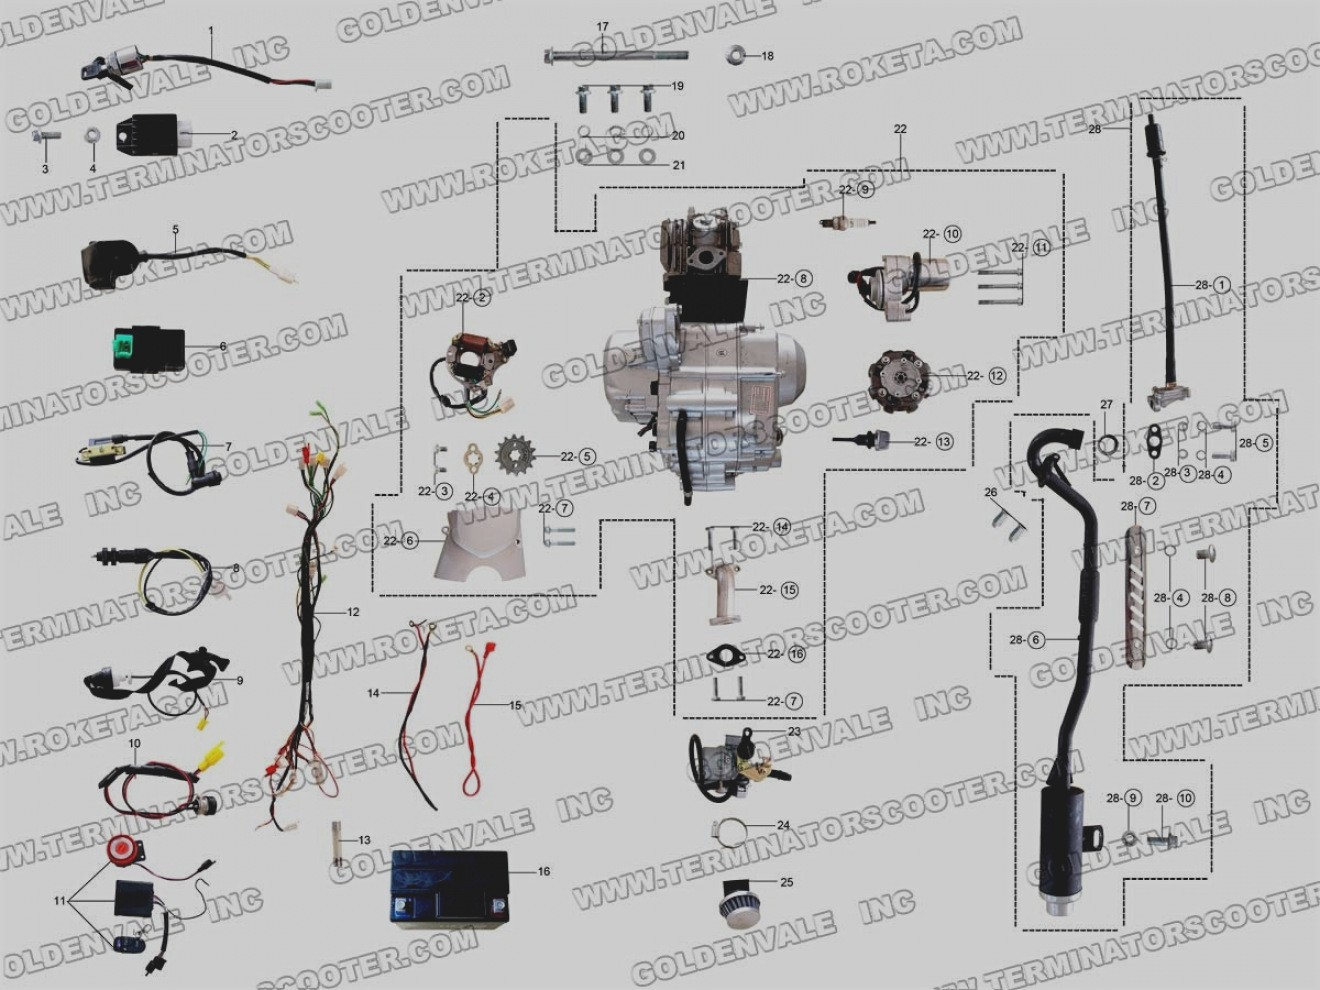 [DIAGRAM] 2010 Tao Tao 150 Atv Wire Diagram FULL Version